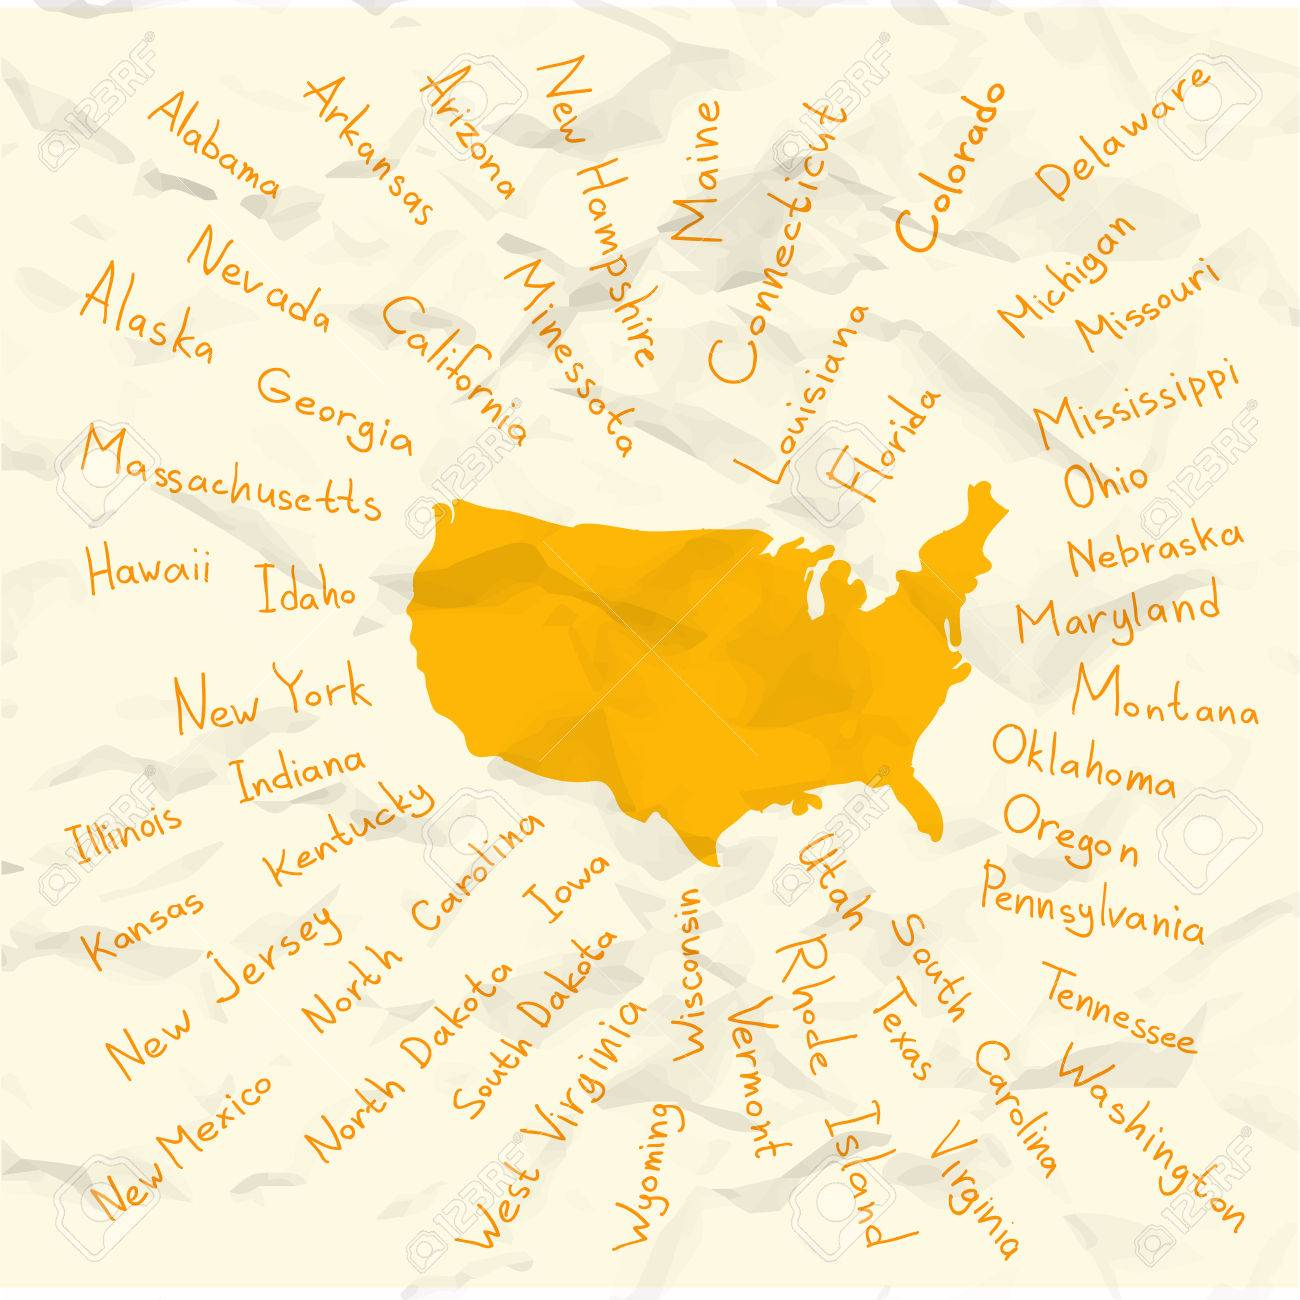 Hand Drawn USA Map With Handwritten State Names Royalty Free ...